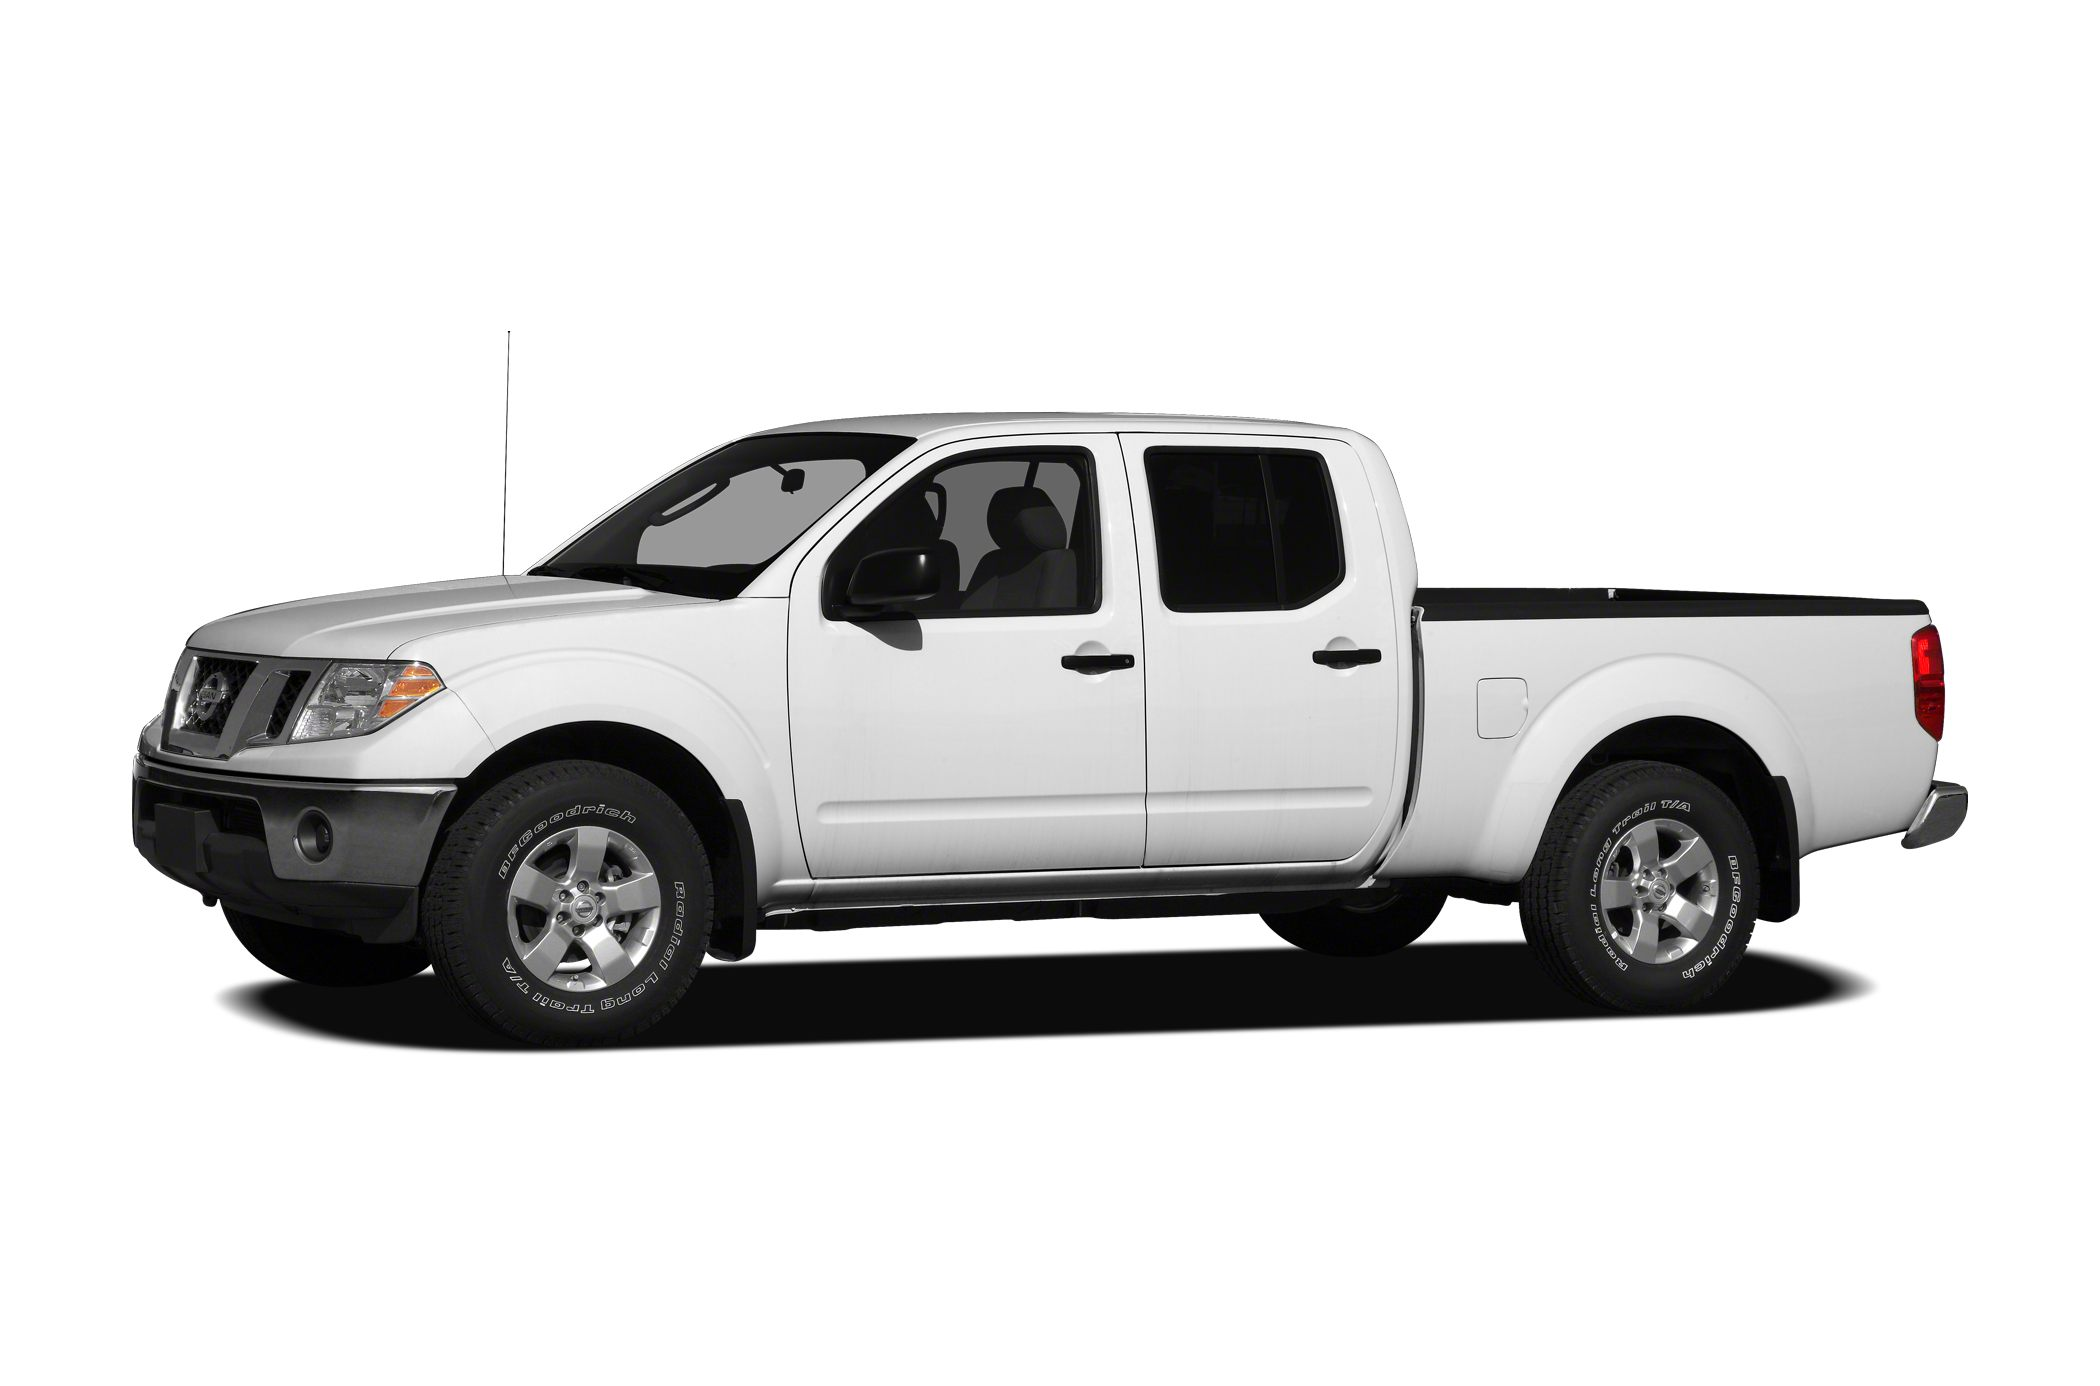 2012 Nissan Frontier SV Crew Cab Pickup for sale in Zelienople for $20,888 with 71,601 miles